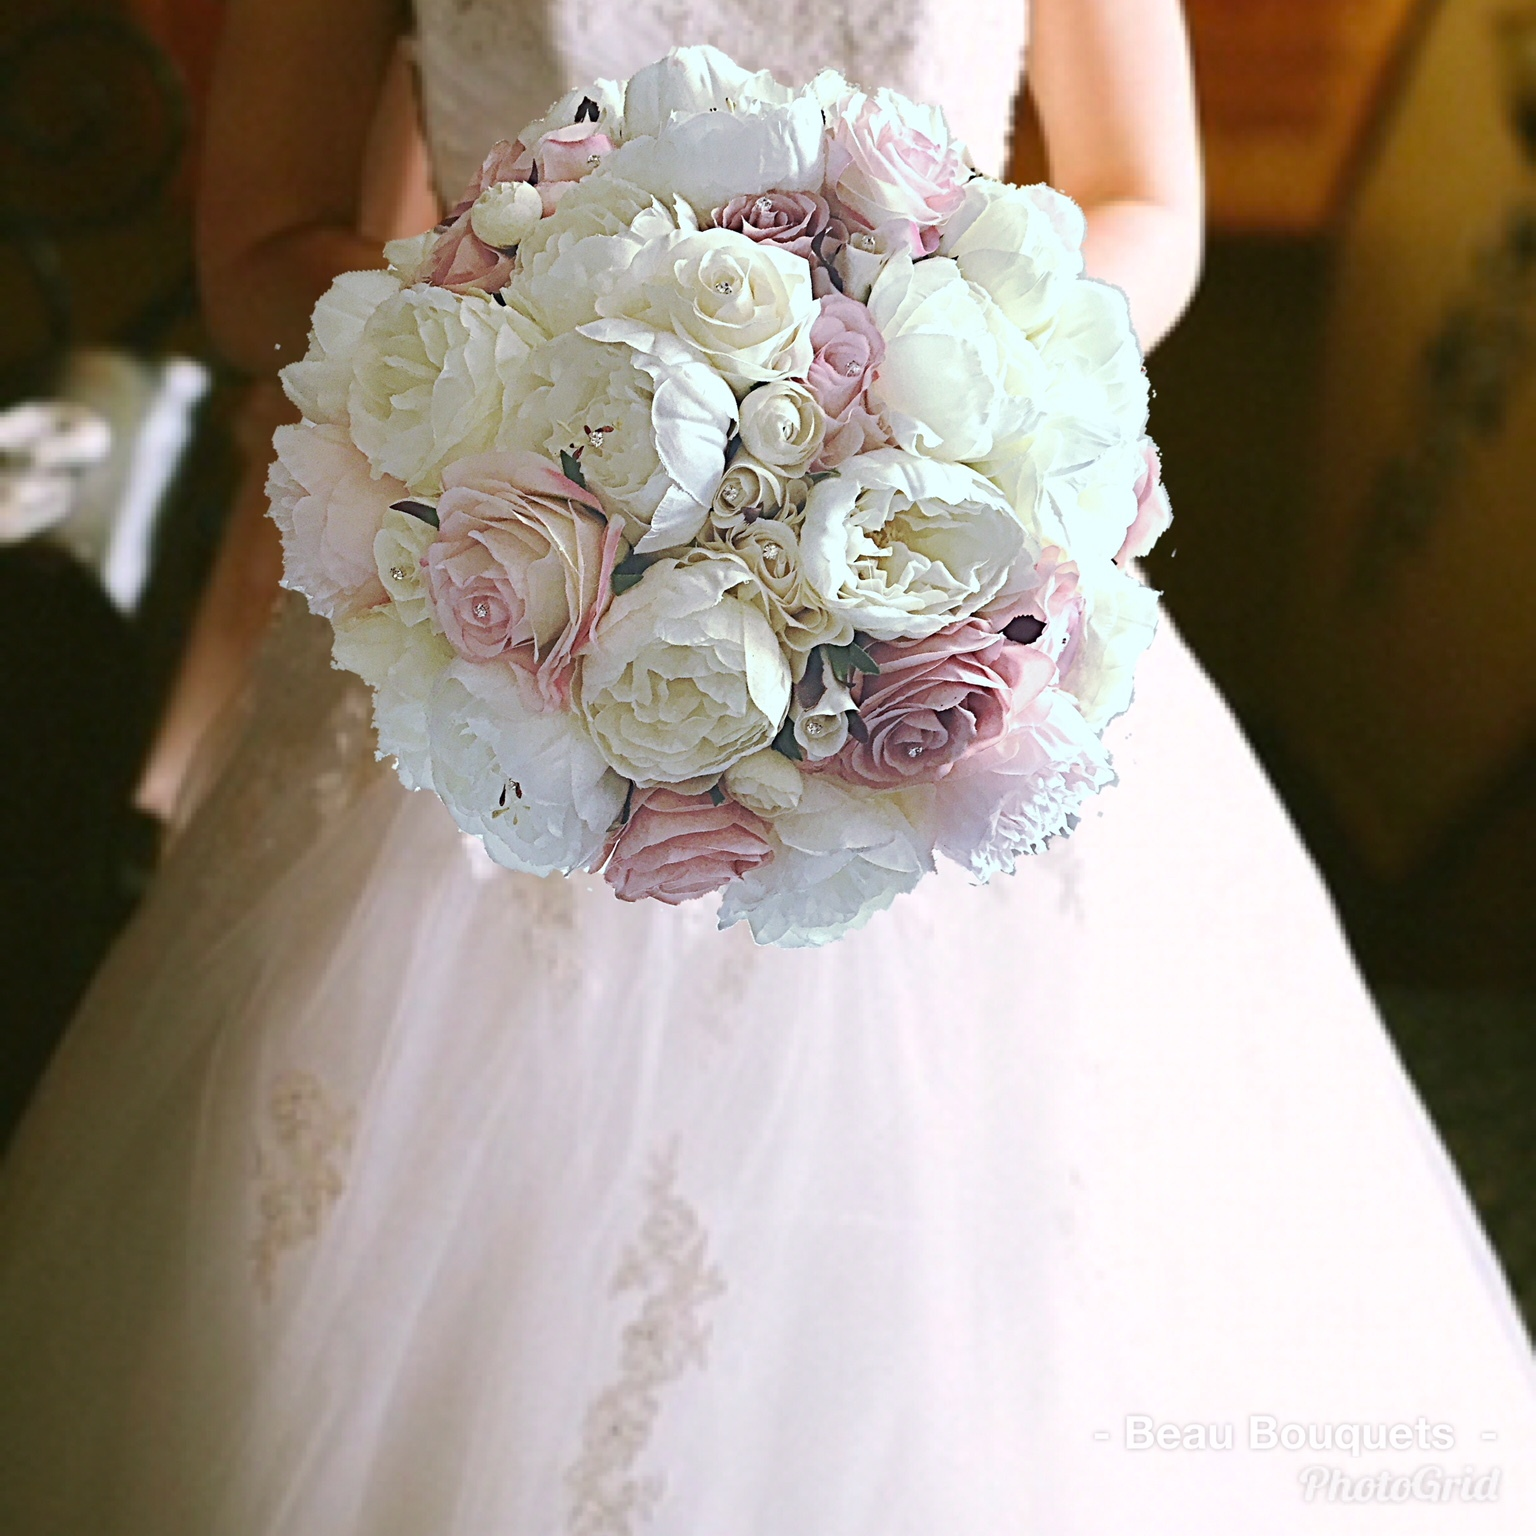 PASSION -OVERSIZED ROUND BRIDE BOUQUET mix of large ivory peonies & roses with dusty pink touches